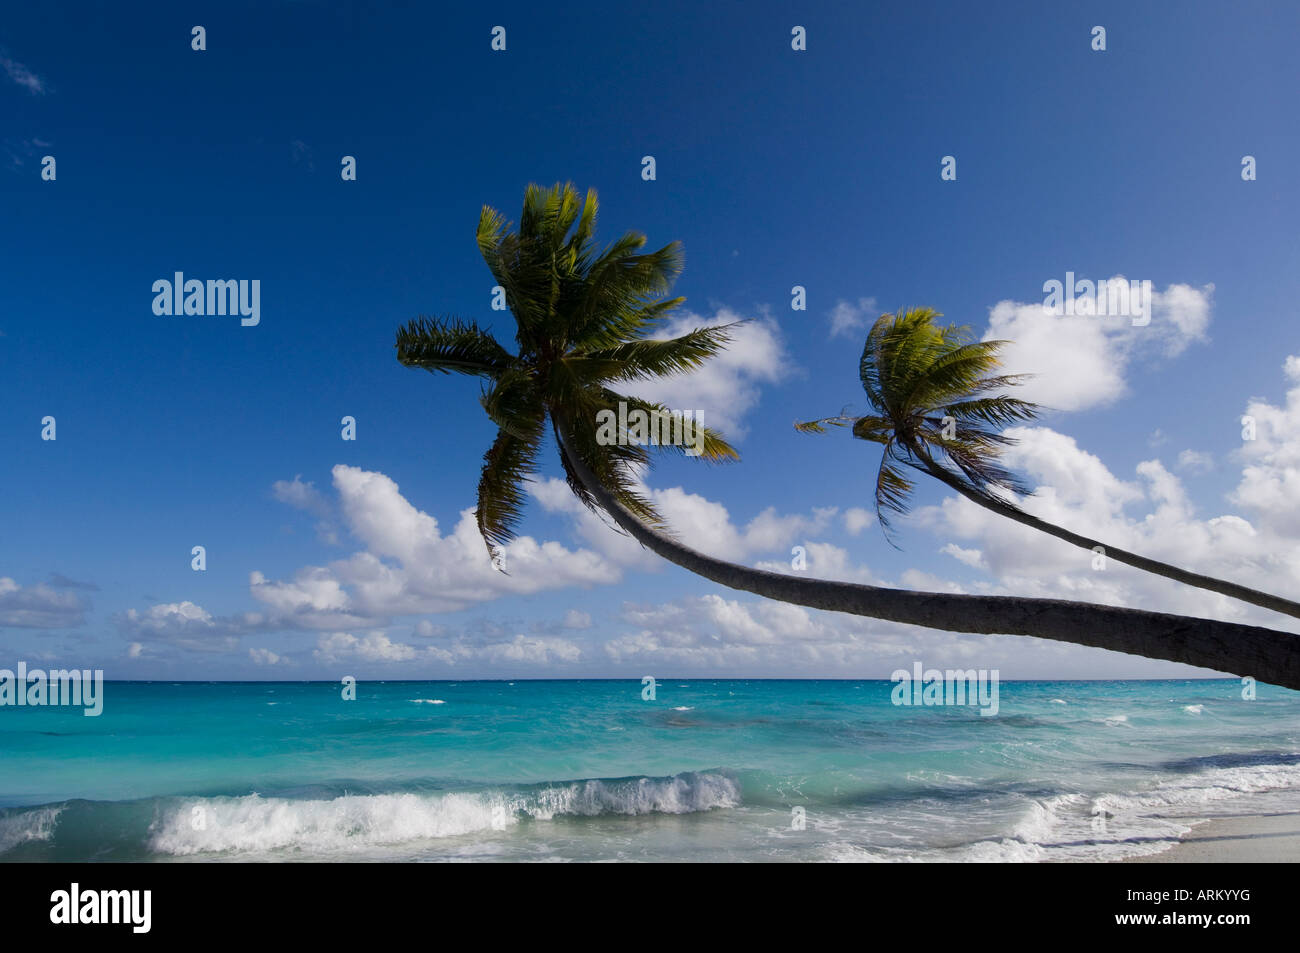 Fakarawa, Tuamotu Archipelago, French Polynesia, Pacific Islands, Pacific - Stock Image